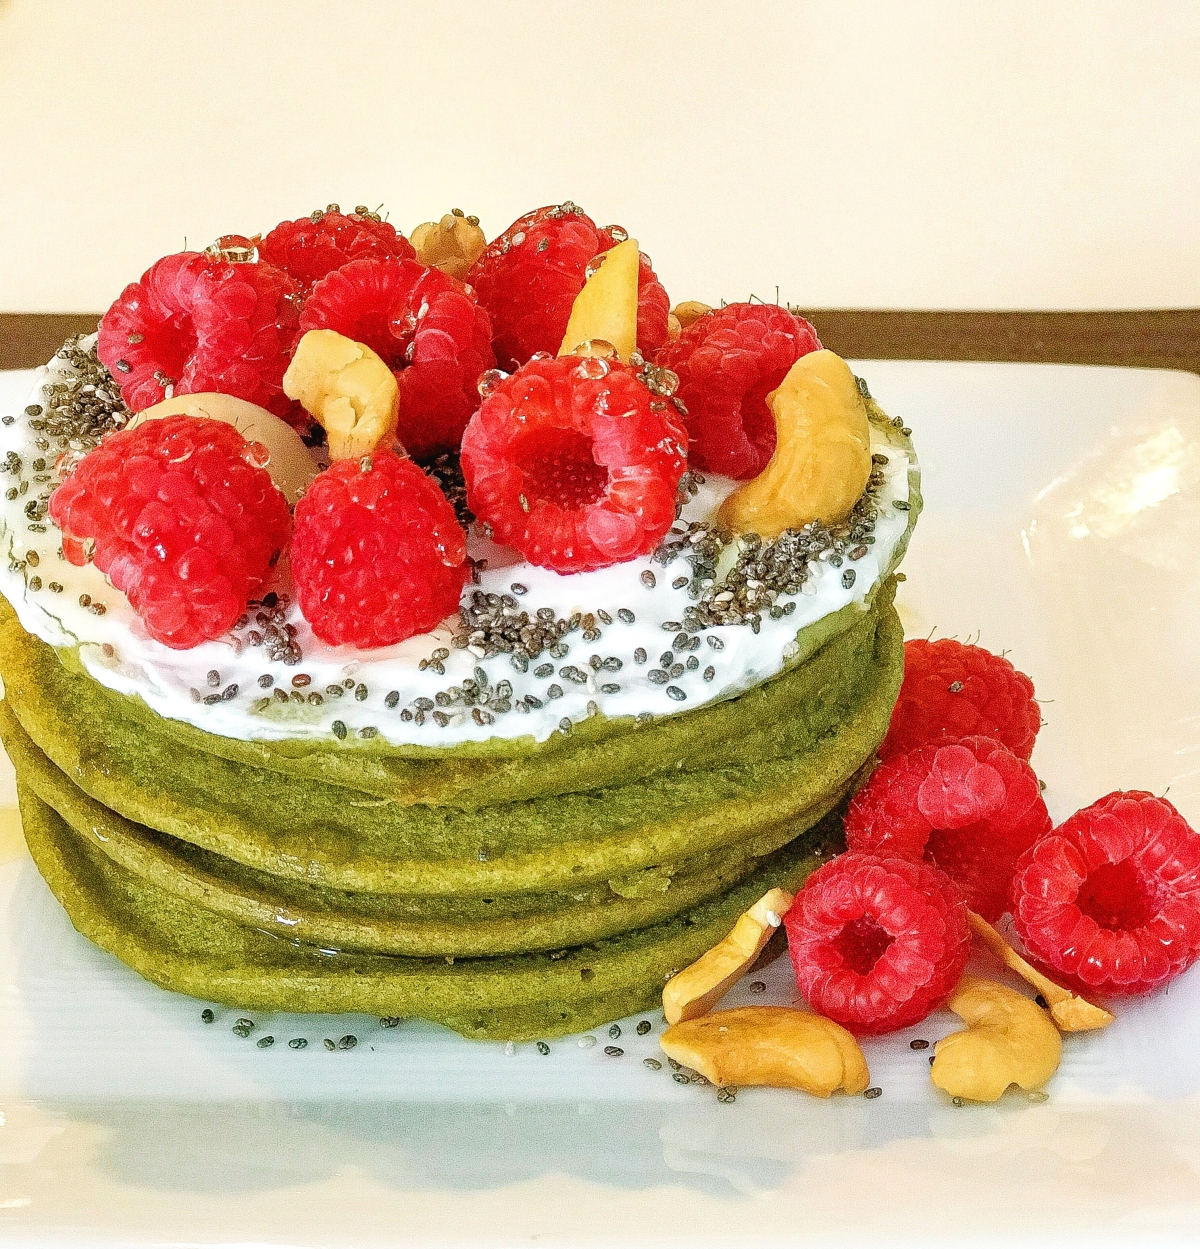 New recipe alert! Easy Matcha Green Tea Banana Pancakes